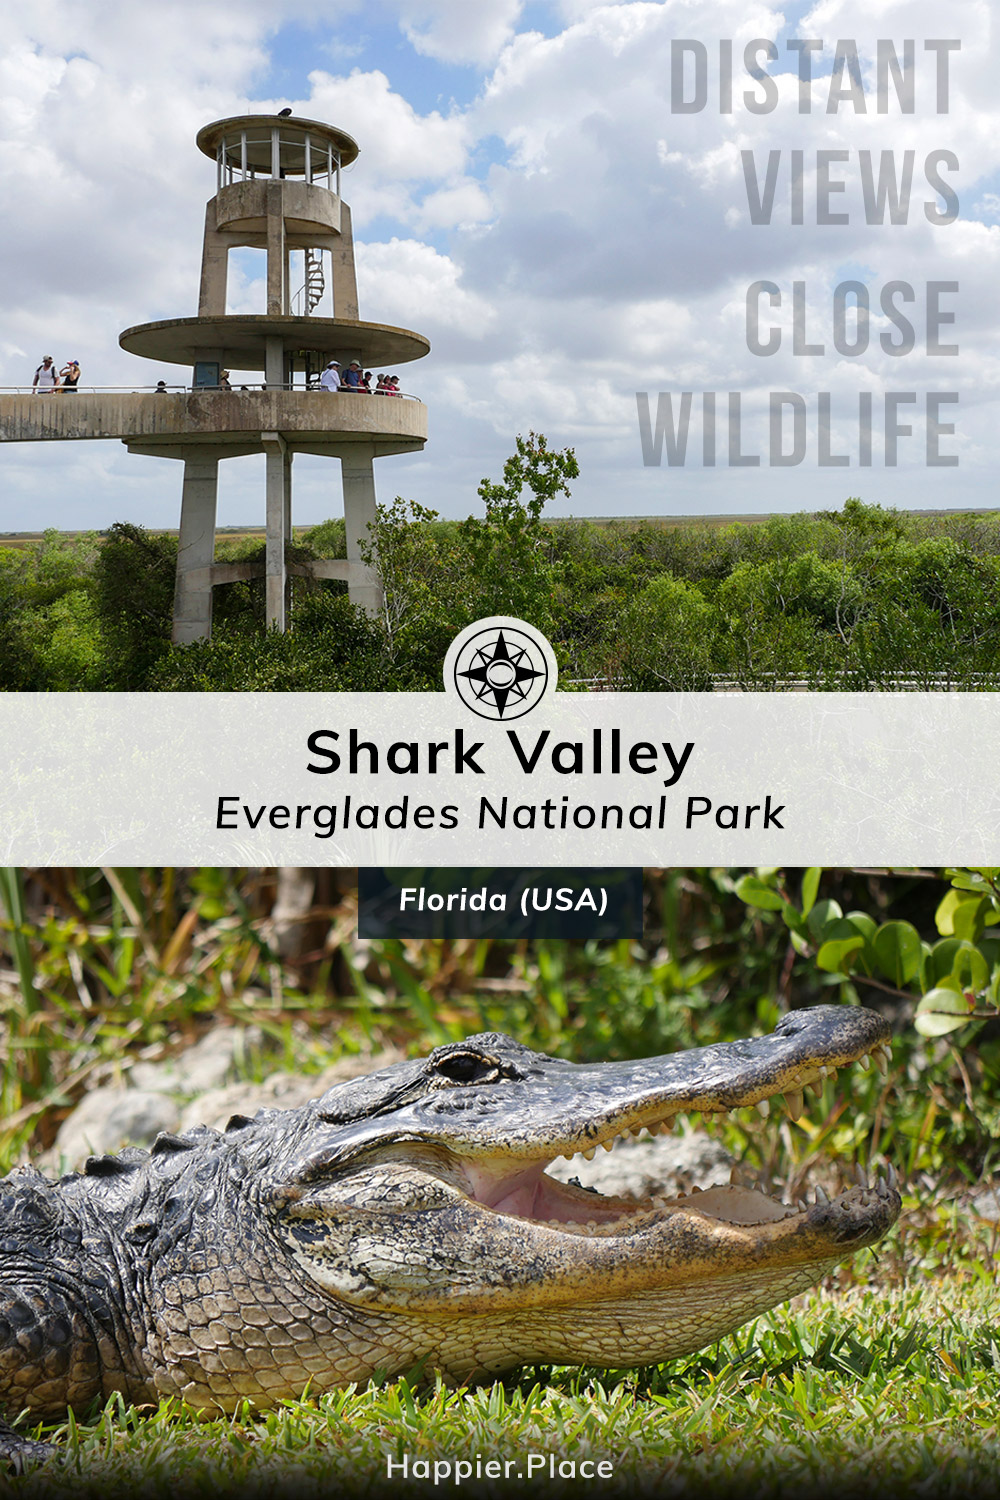 Distant views and close wildlife in Shark Valley Everglades National Park, Florida, USA, gator, observation tower, Happier Place